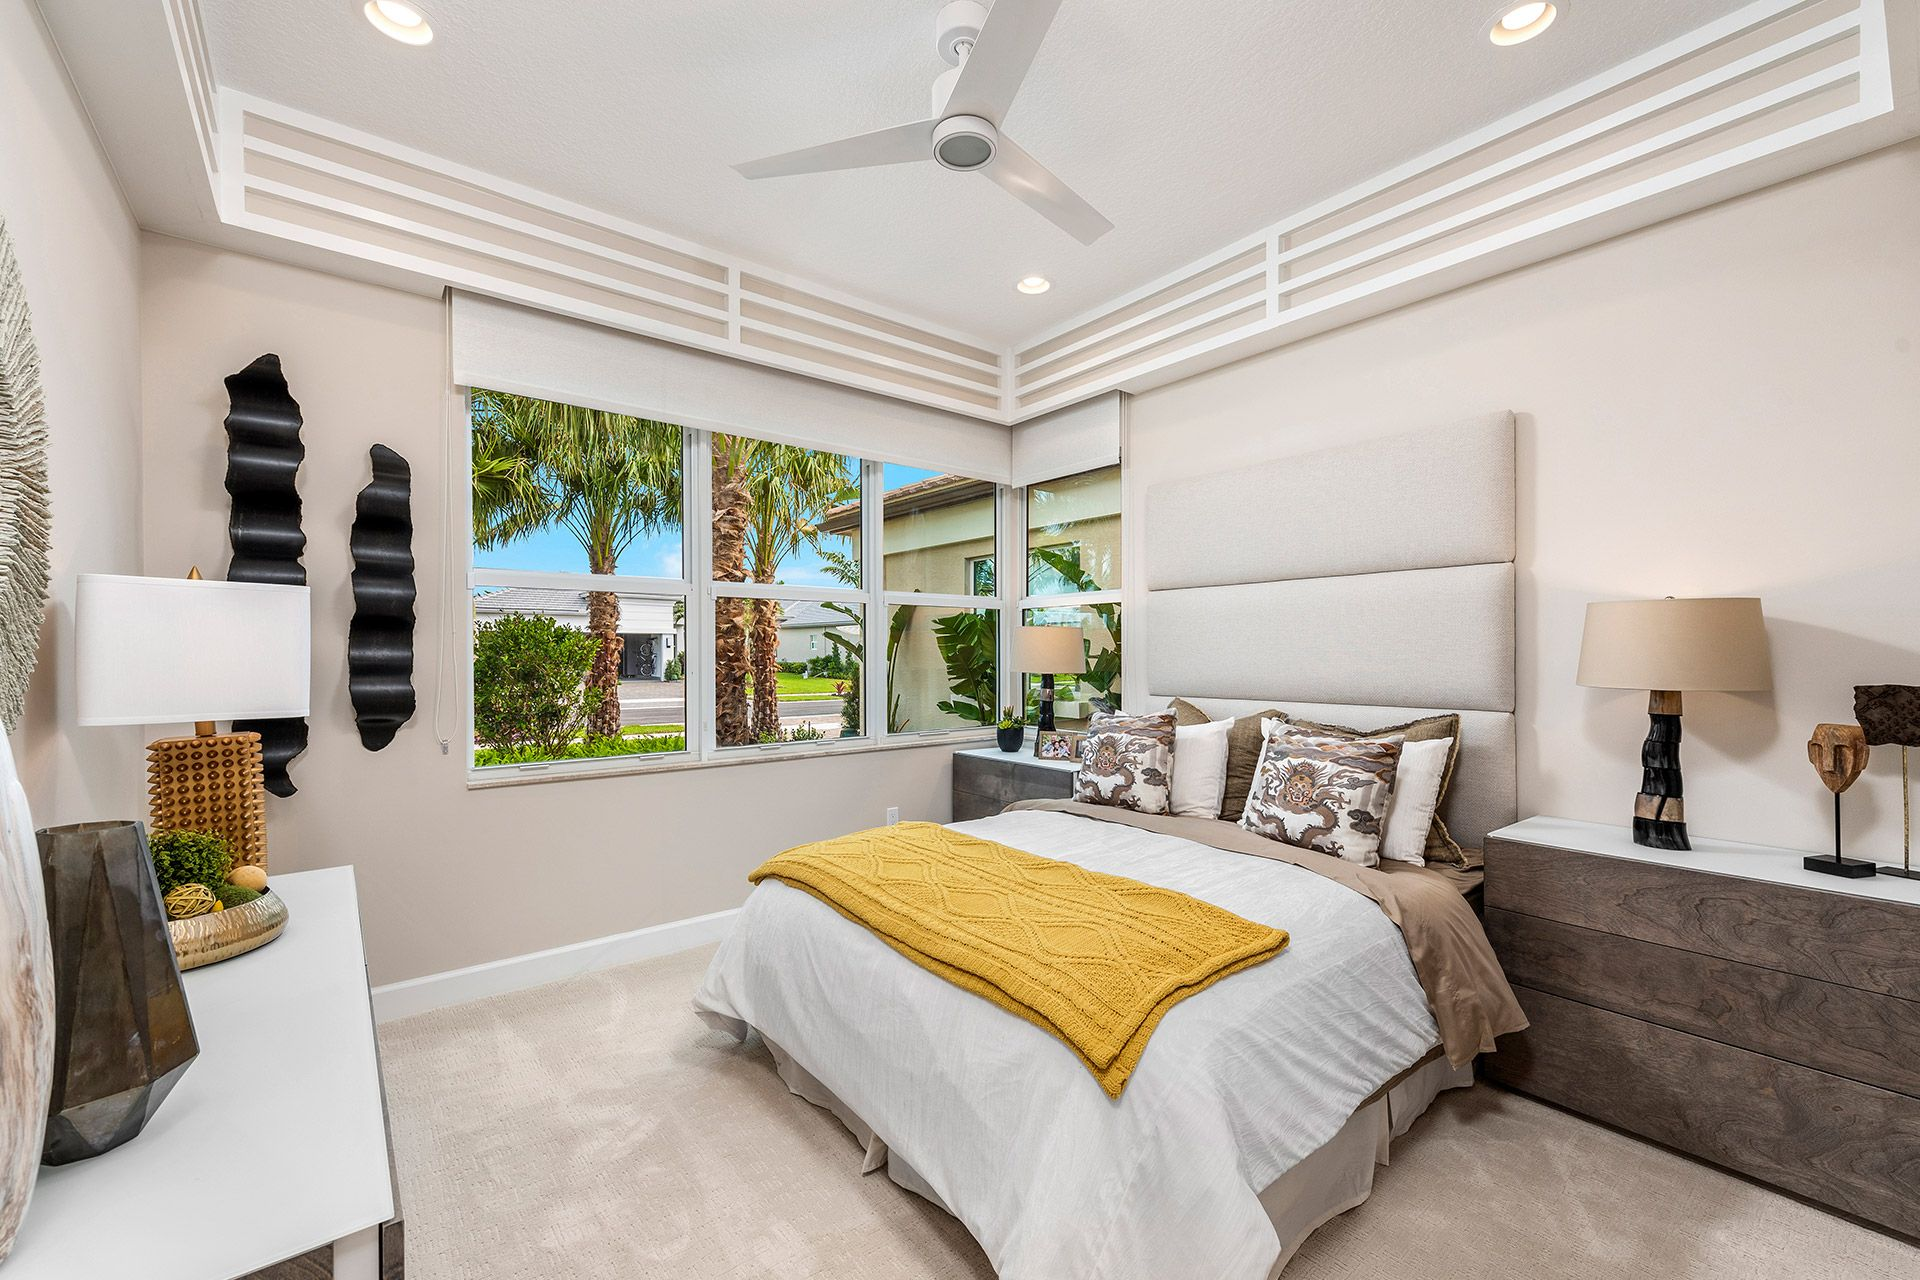 Bedroom featured in the Napa By GL Homes in Palm Beach County, FL